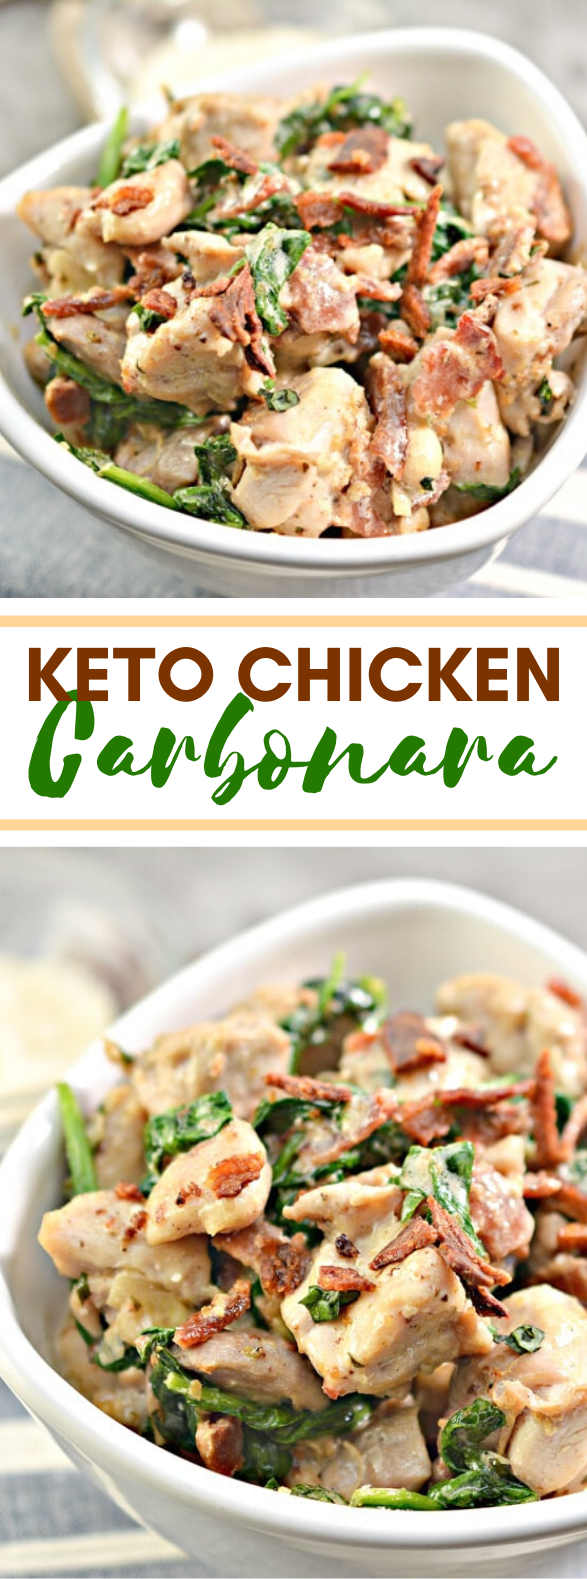 CHICKEN CARBONARA RECIPE – KETO, LOW CARB, GLUTEN-FREE #healthy #diet